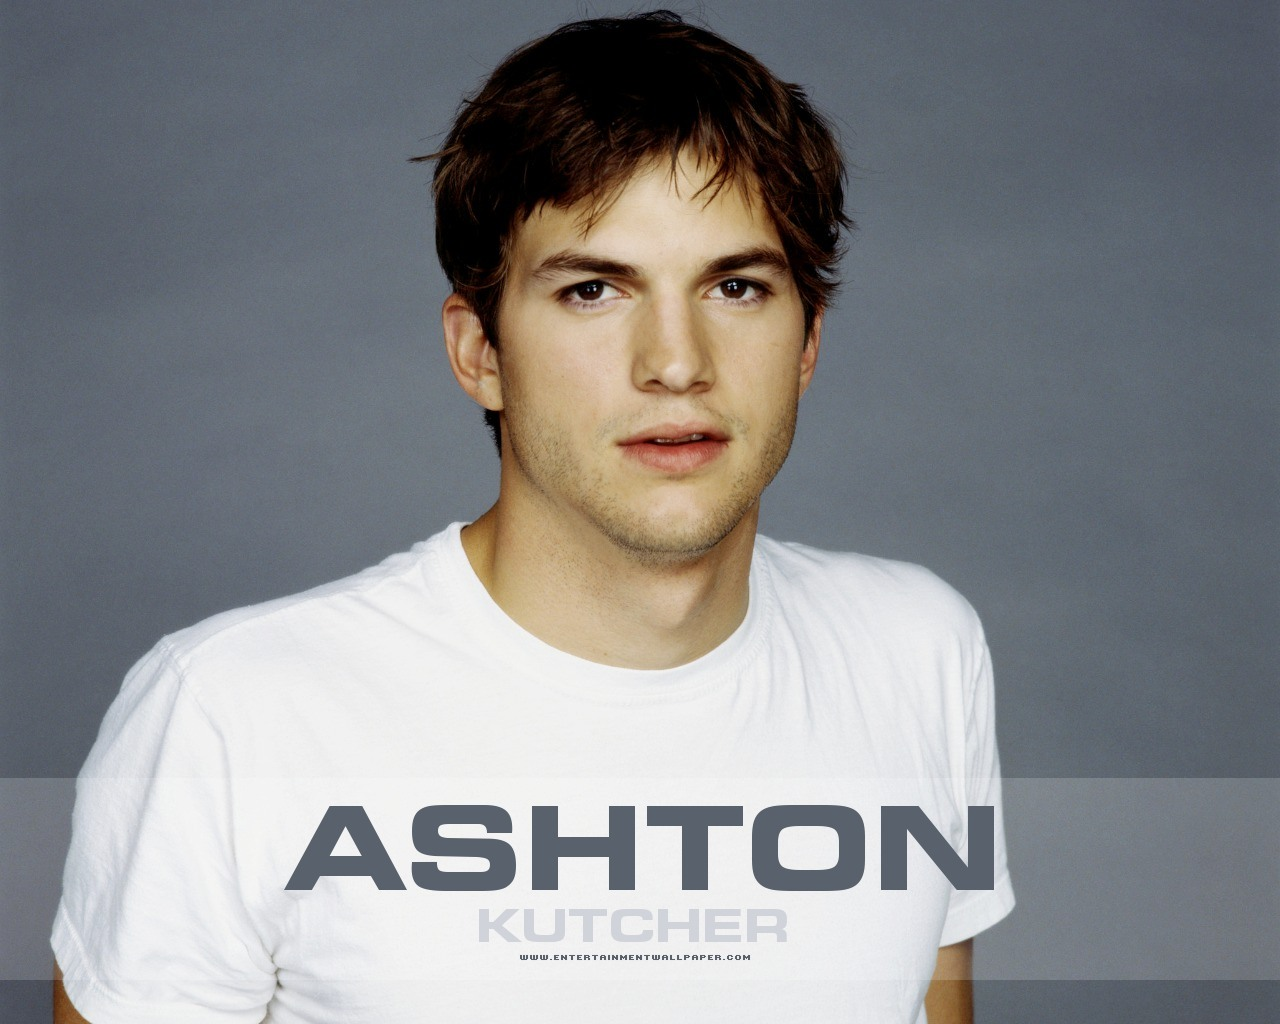 Ashton kutcher,wallpapers,actor